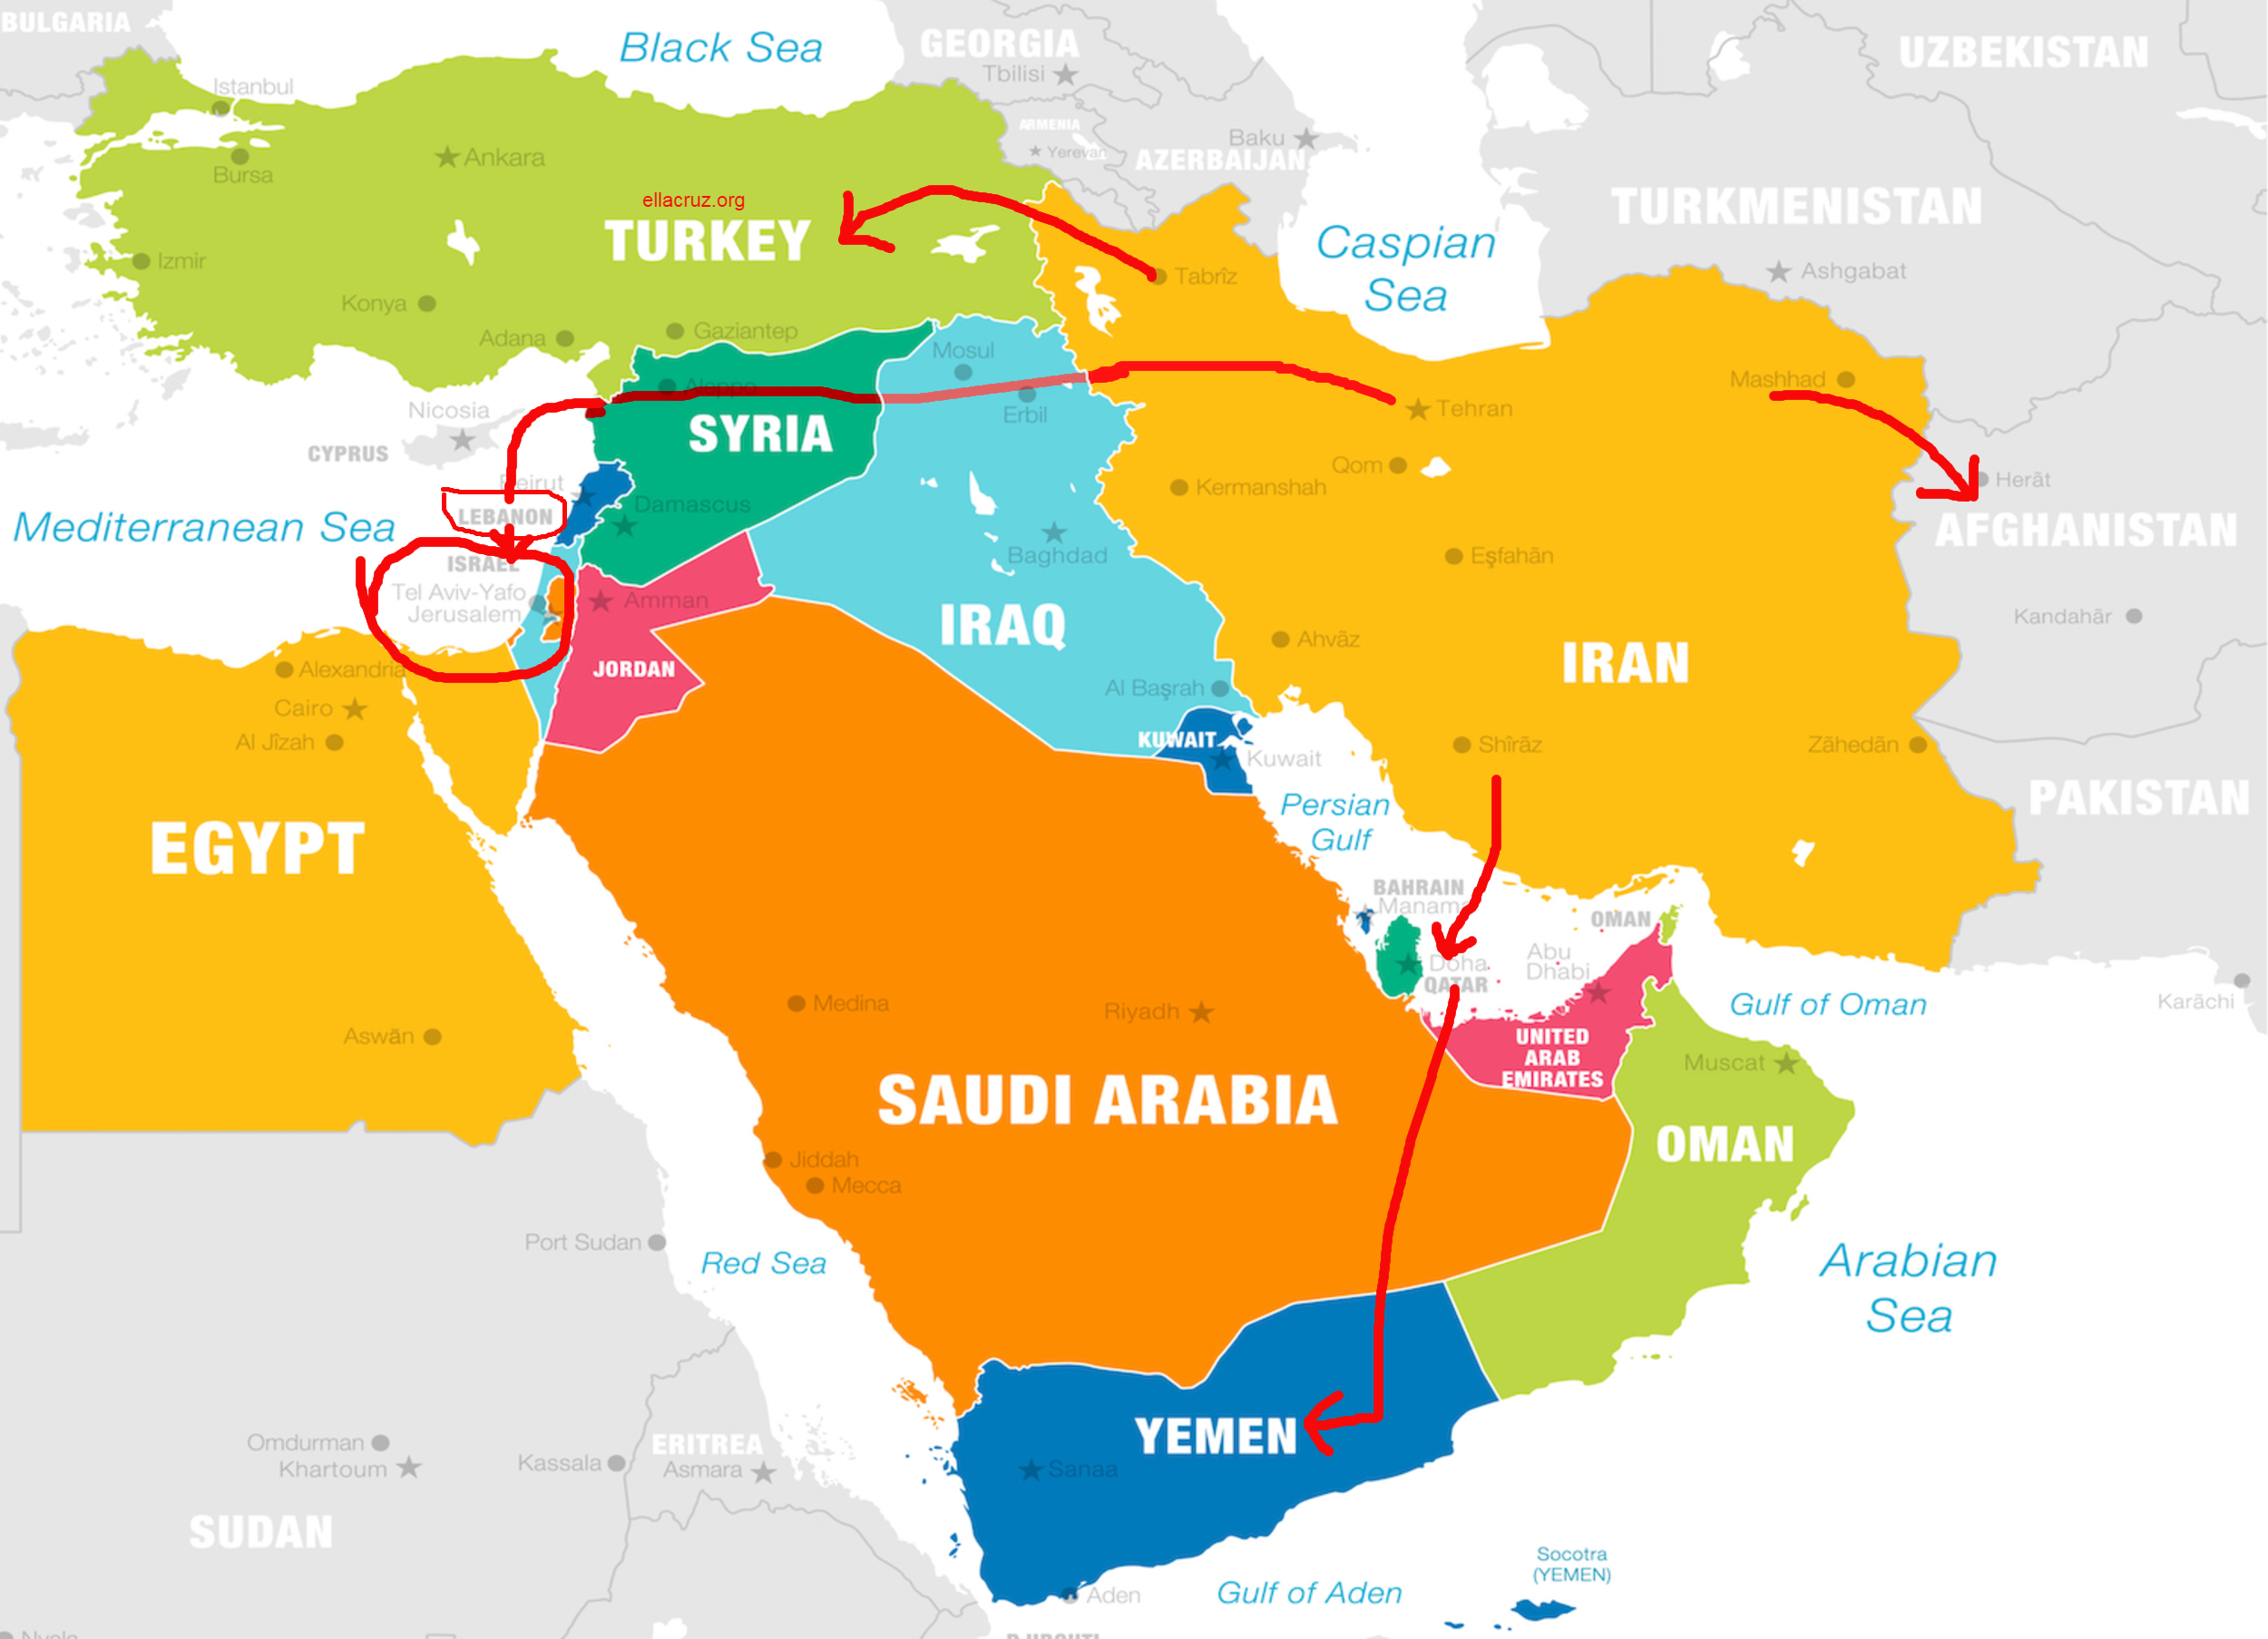 major shifts of power and the global dynamics will always depend on the middle east, particularly Iran, Iraq, Afghanistan, Syria, and Israel ellacruz.org